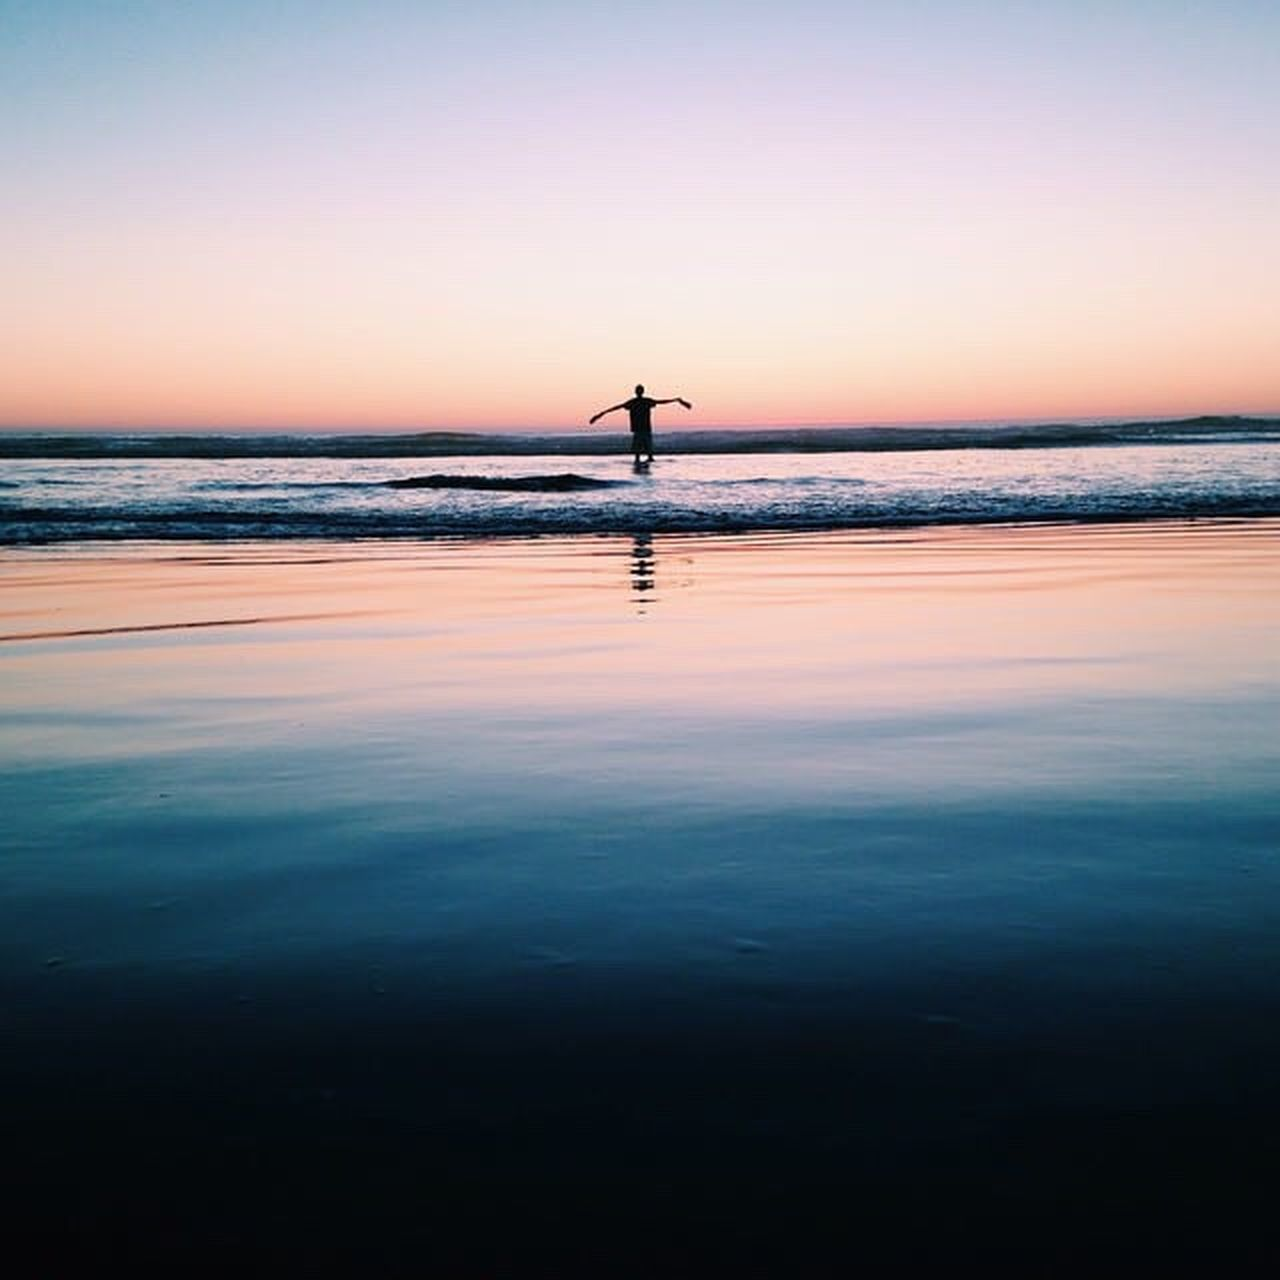 sunset, silhouette, reflection, beauty in nature, sky, nature, sea, scenics, water, orange color, tranquil scene, horizon over water, tranquility, one person, full length, blue, outdoors, day, people, adult